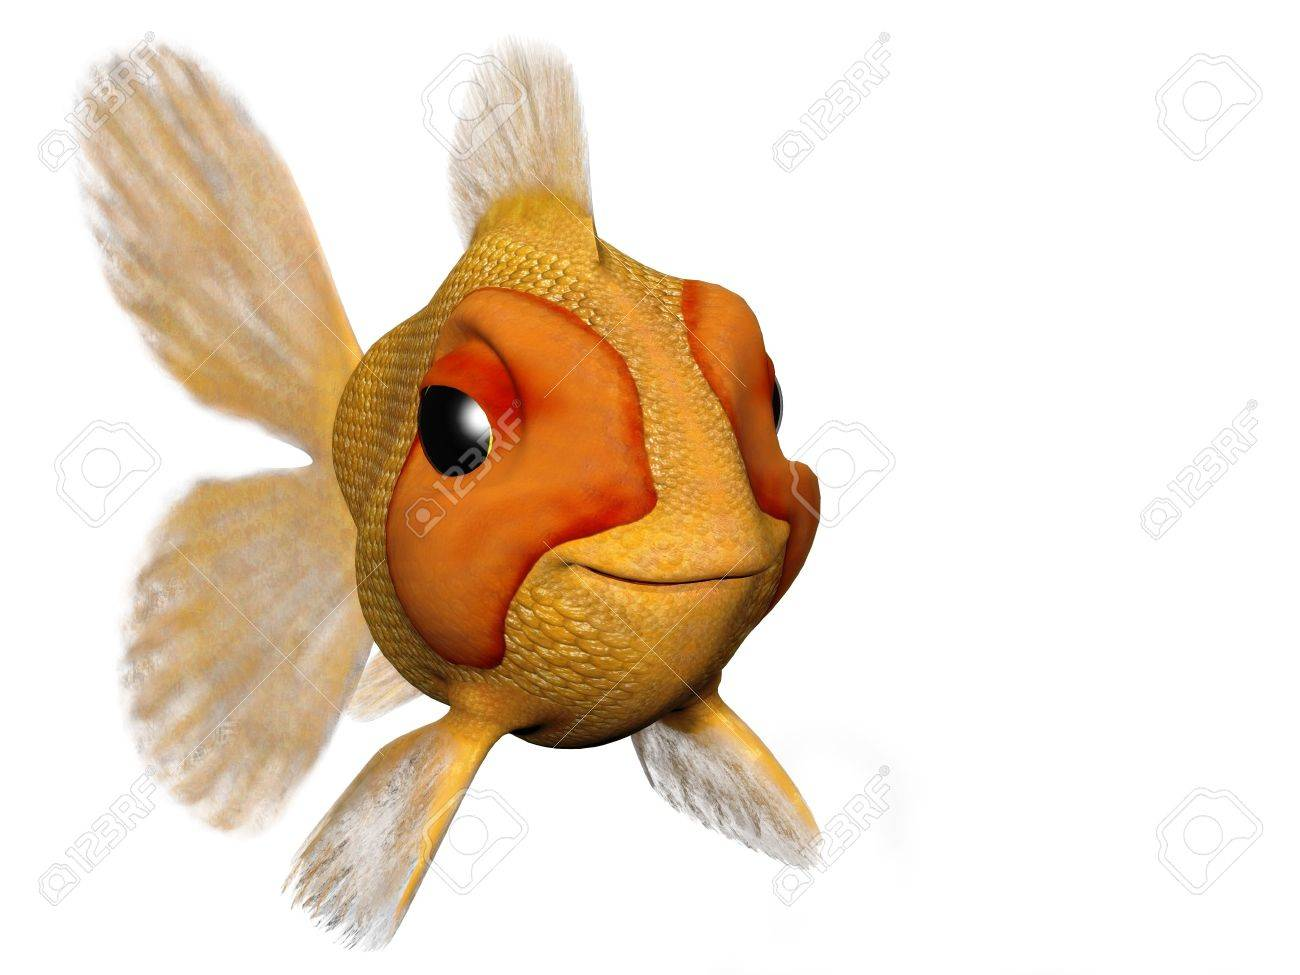 A cartoon goldfish looking very happy and content. Stock Photo - 3681925